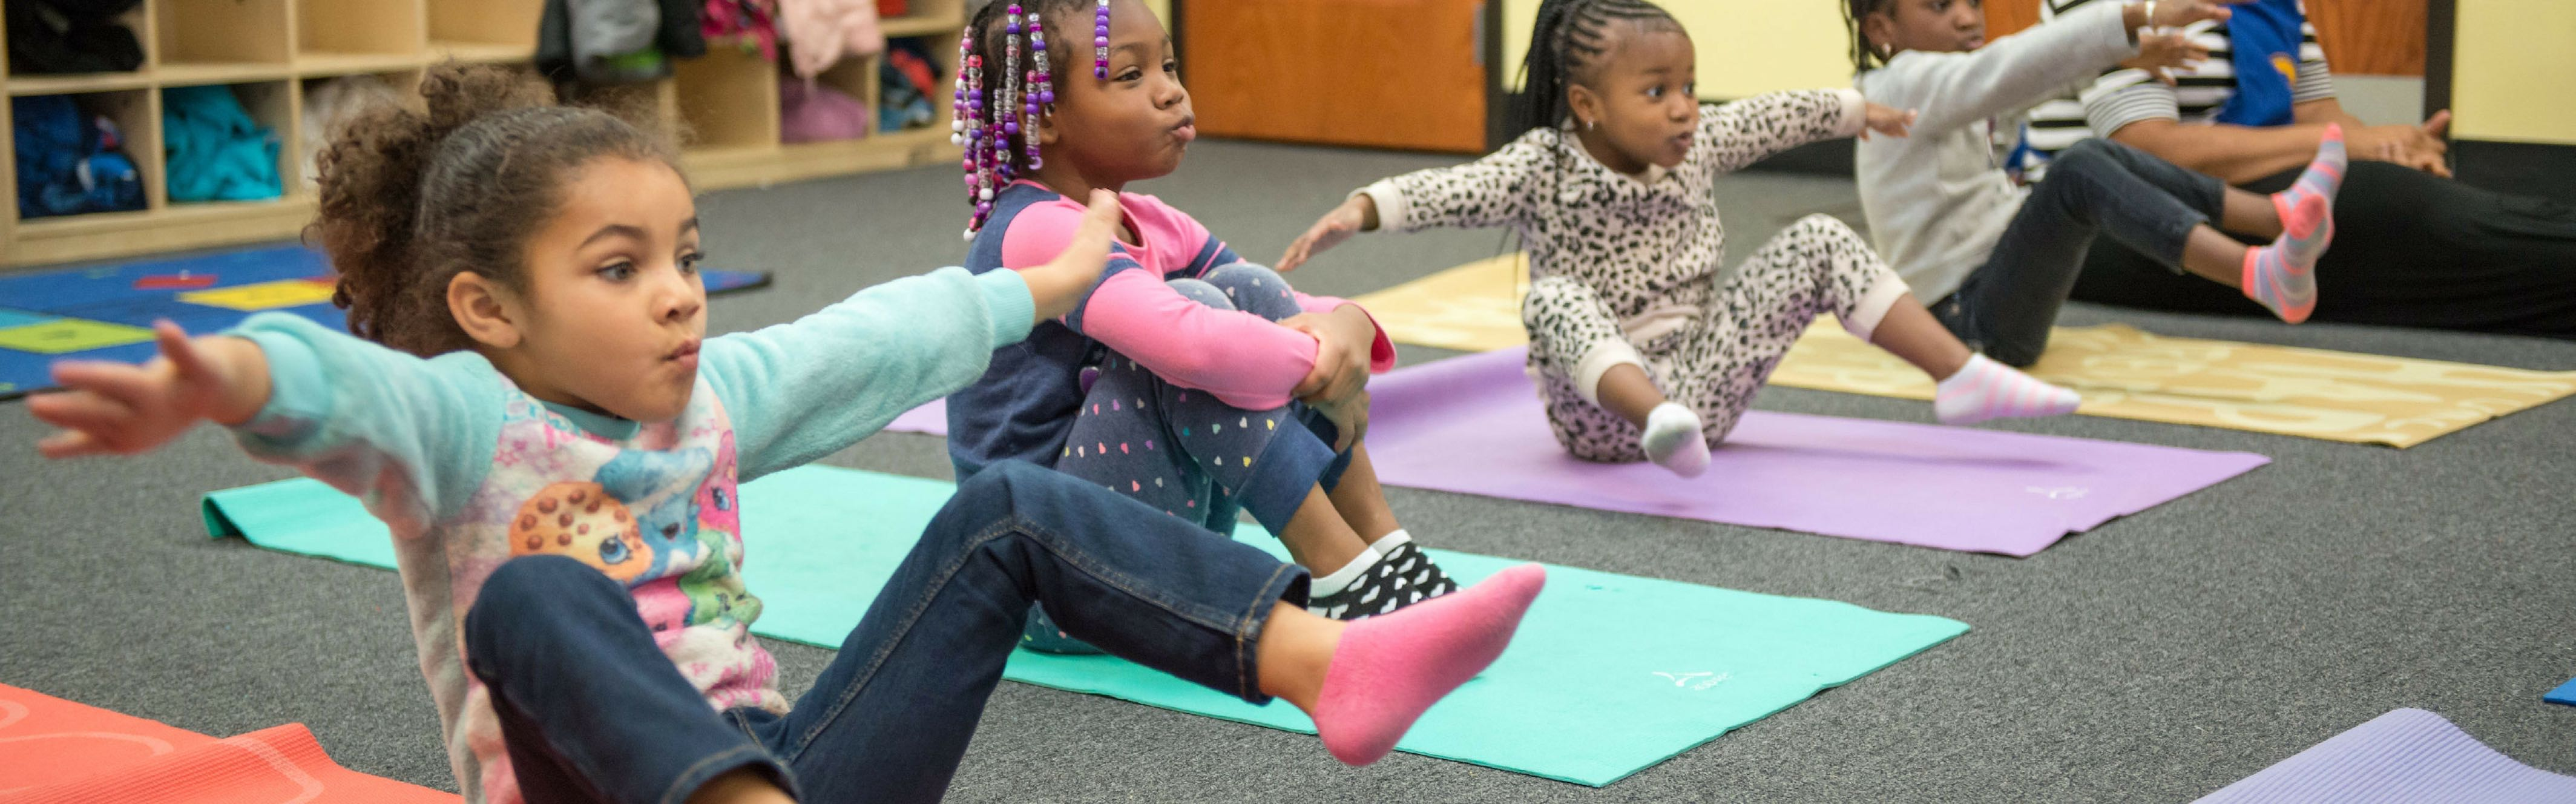 Three preschool age girls doing yoga pose on yoga mats.